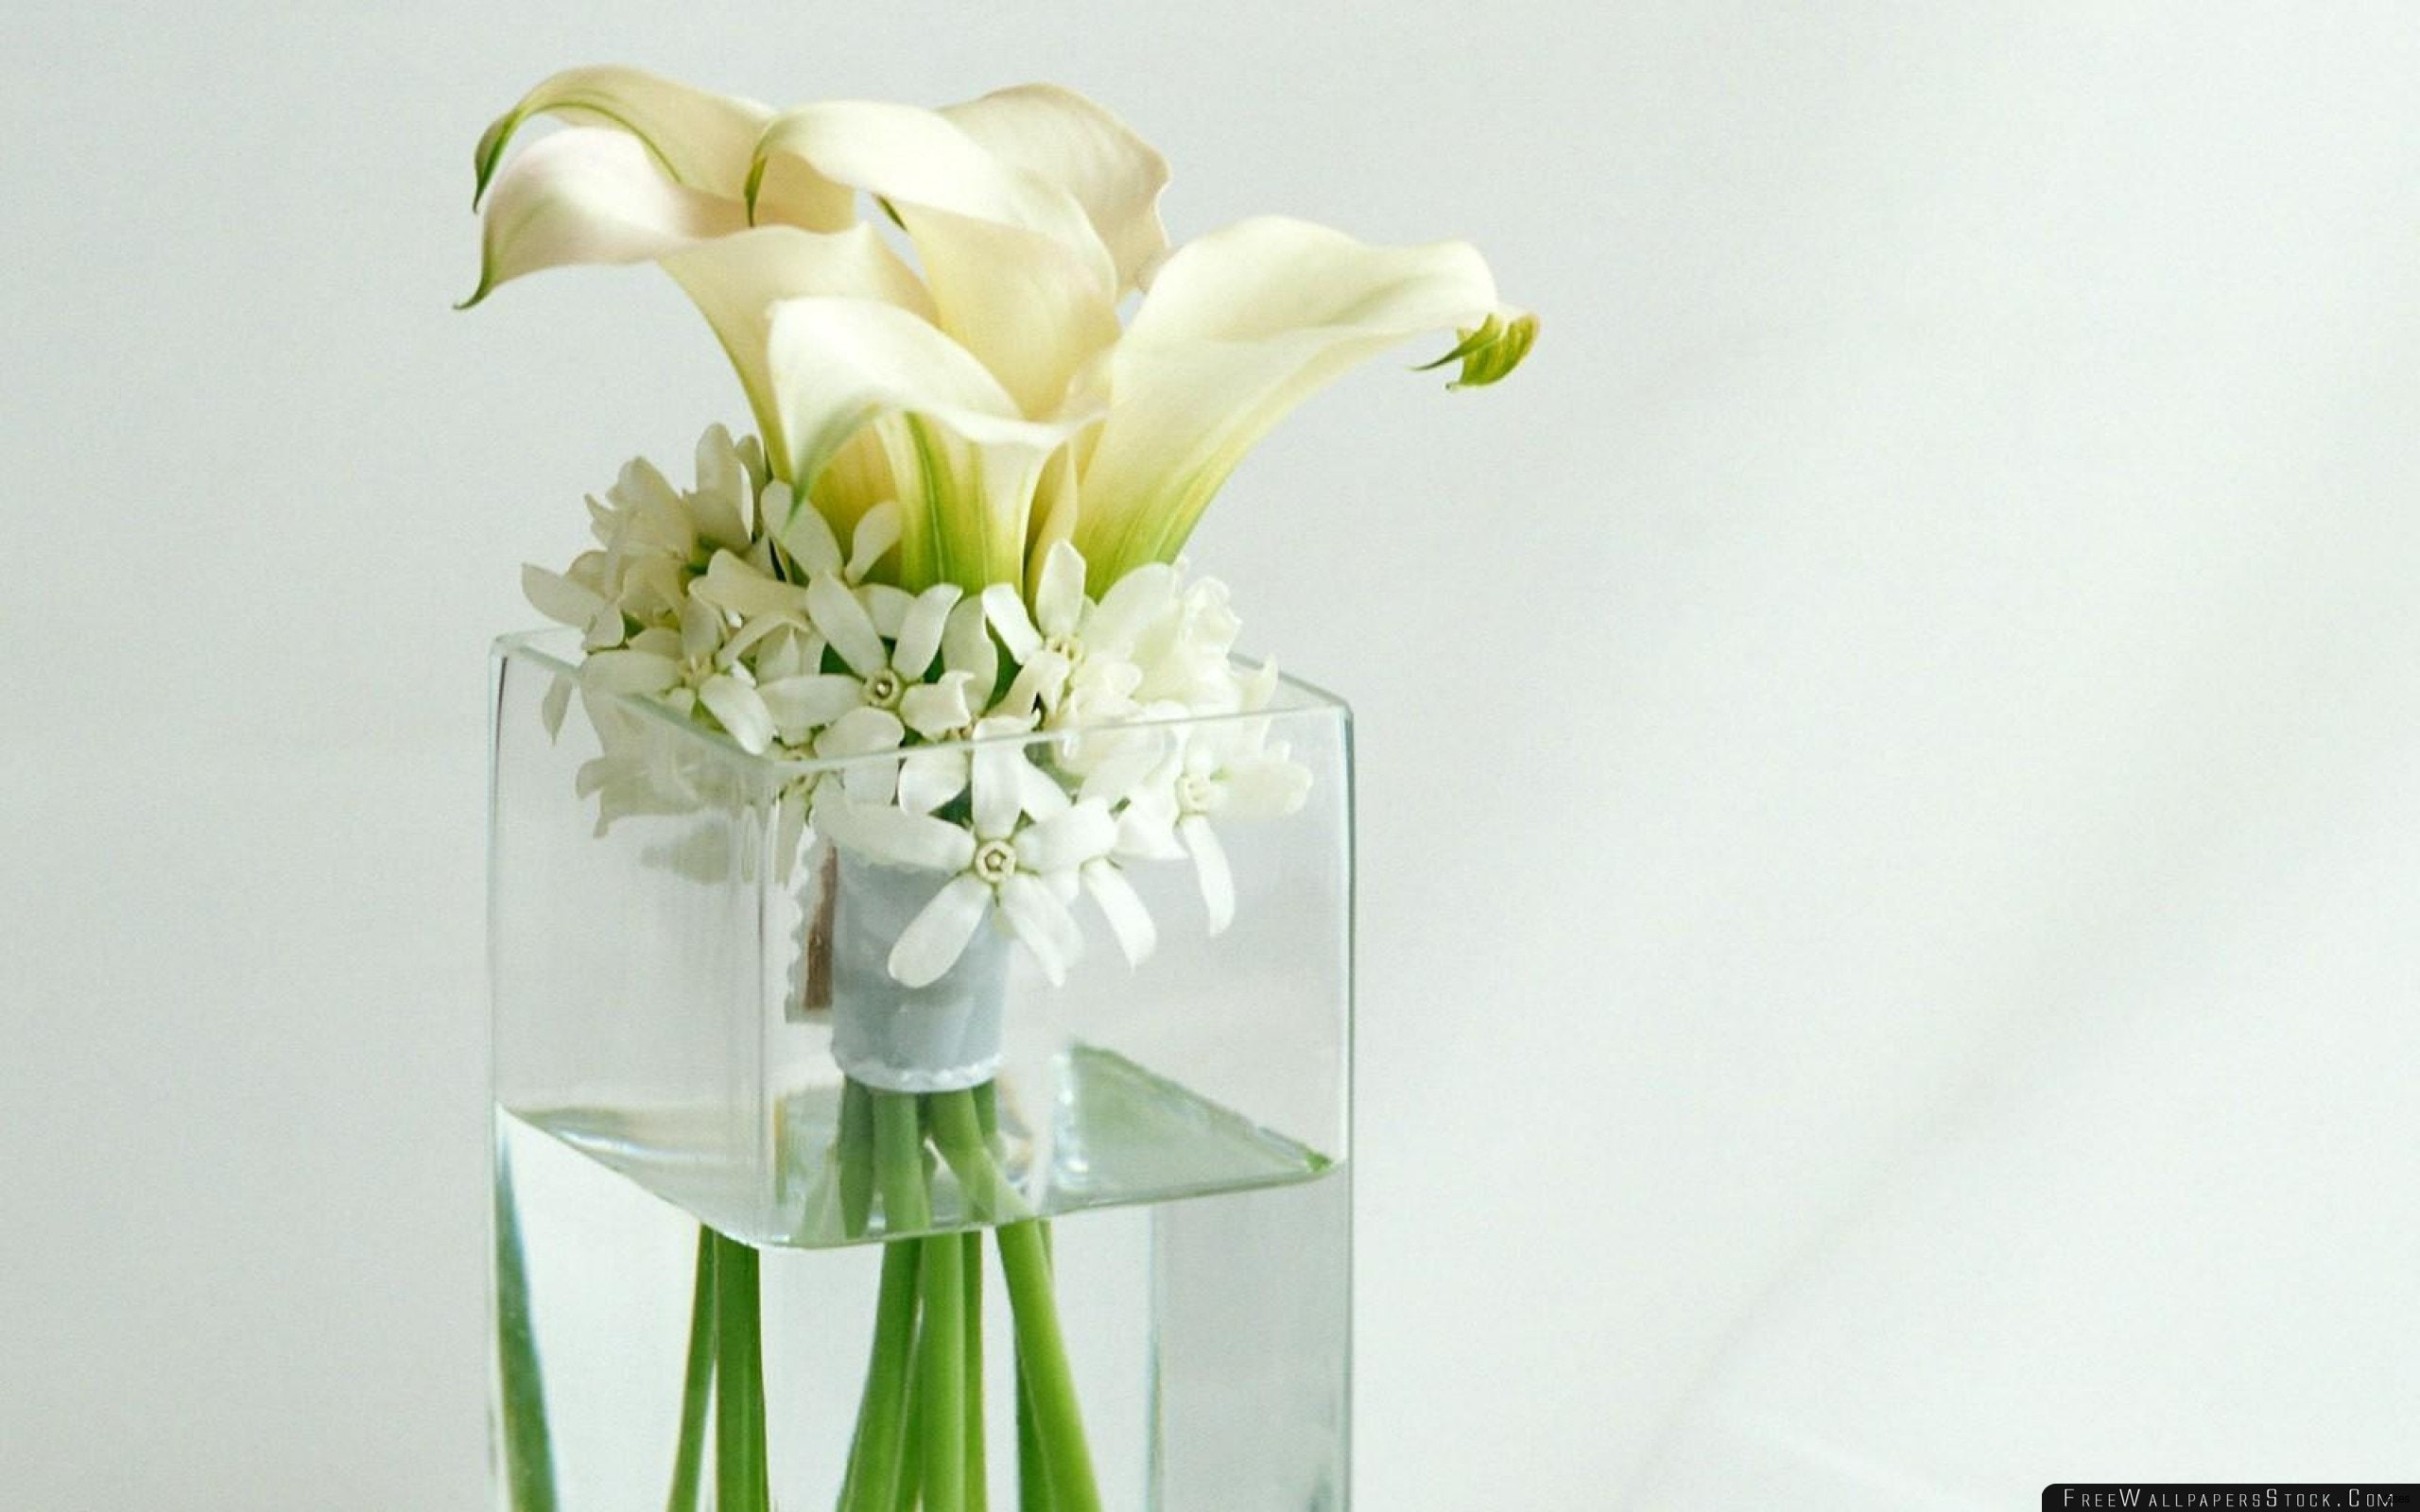 flowers with vase included of rectangle flower vases image tall vase centerpiece ideas vases within rectangle flower vases image tall vase centerpiece ideas vases flowers in water 0d artificial of rectangle